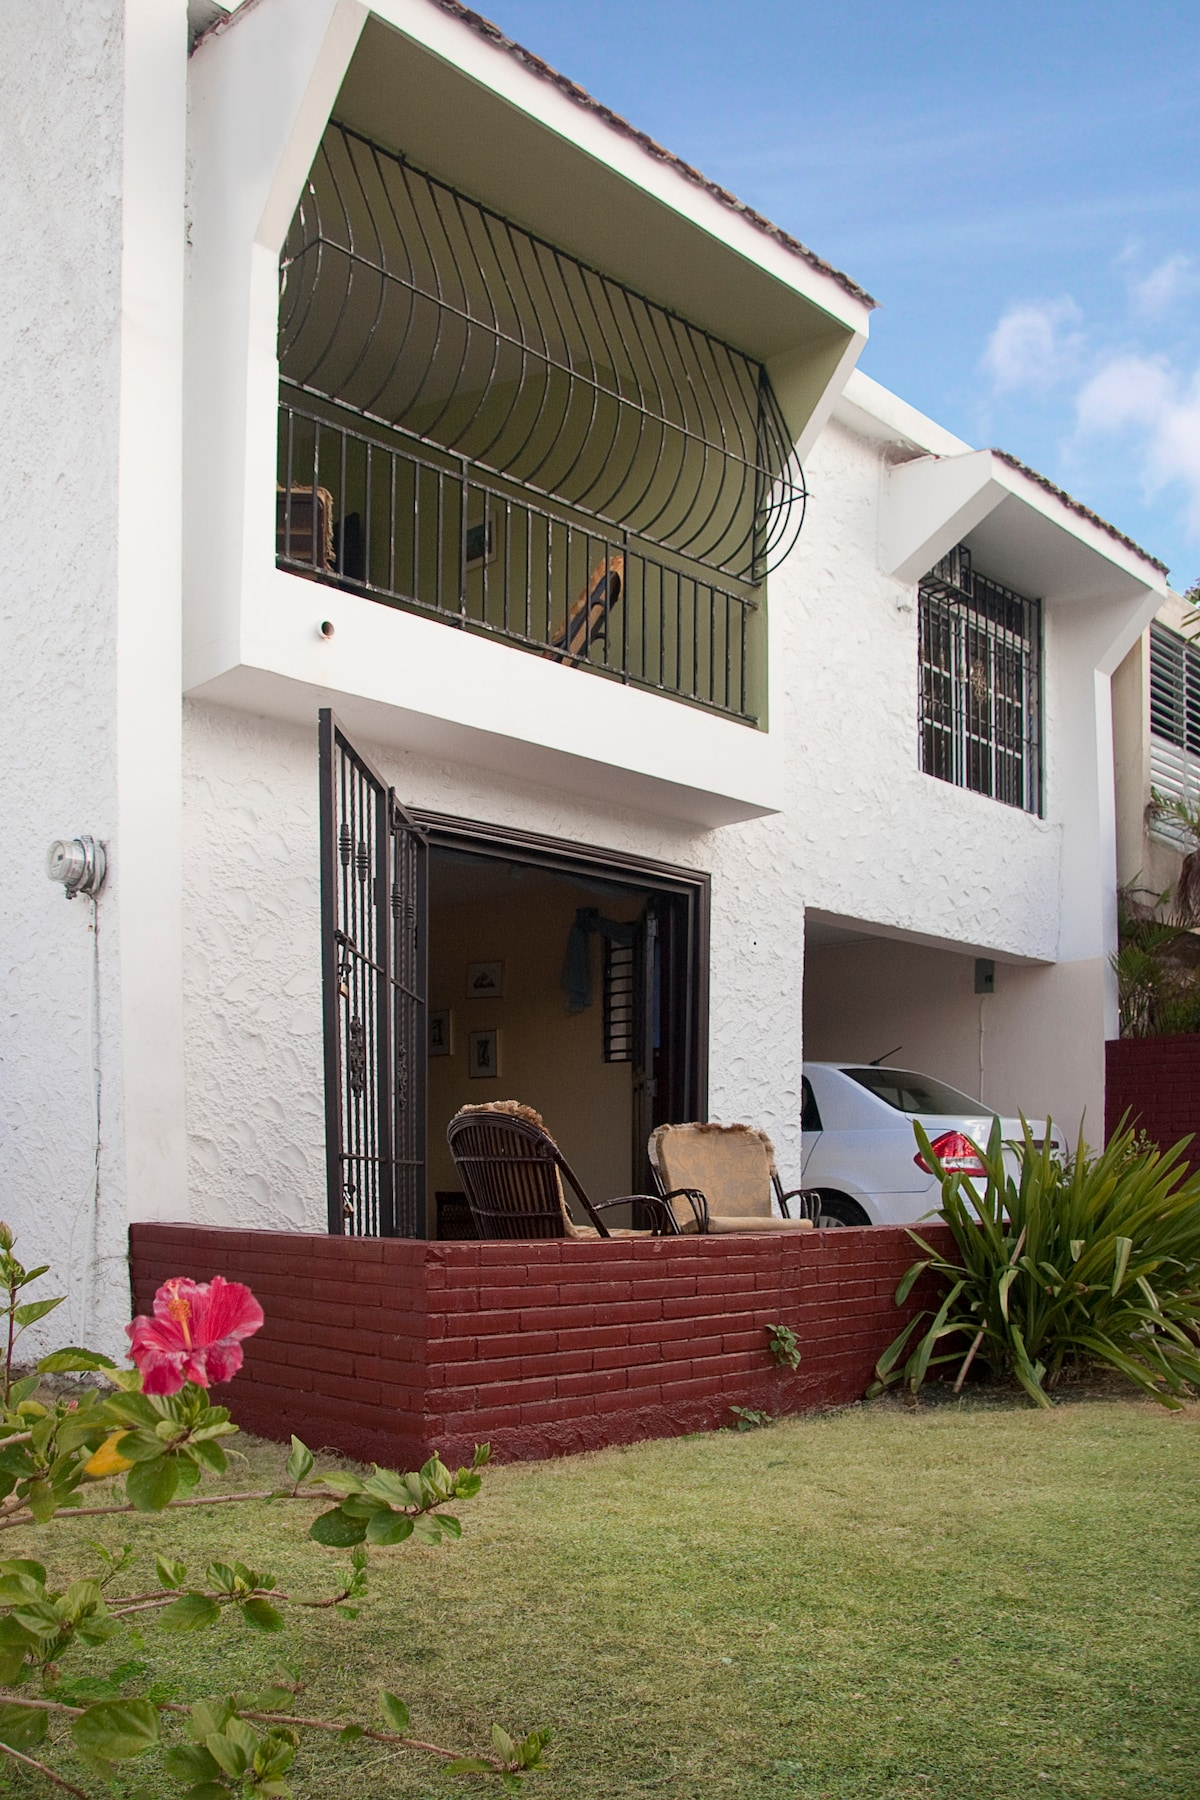 open porch, balcony upstairs